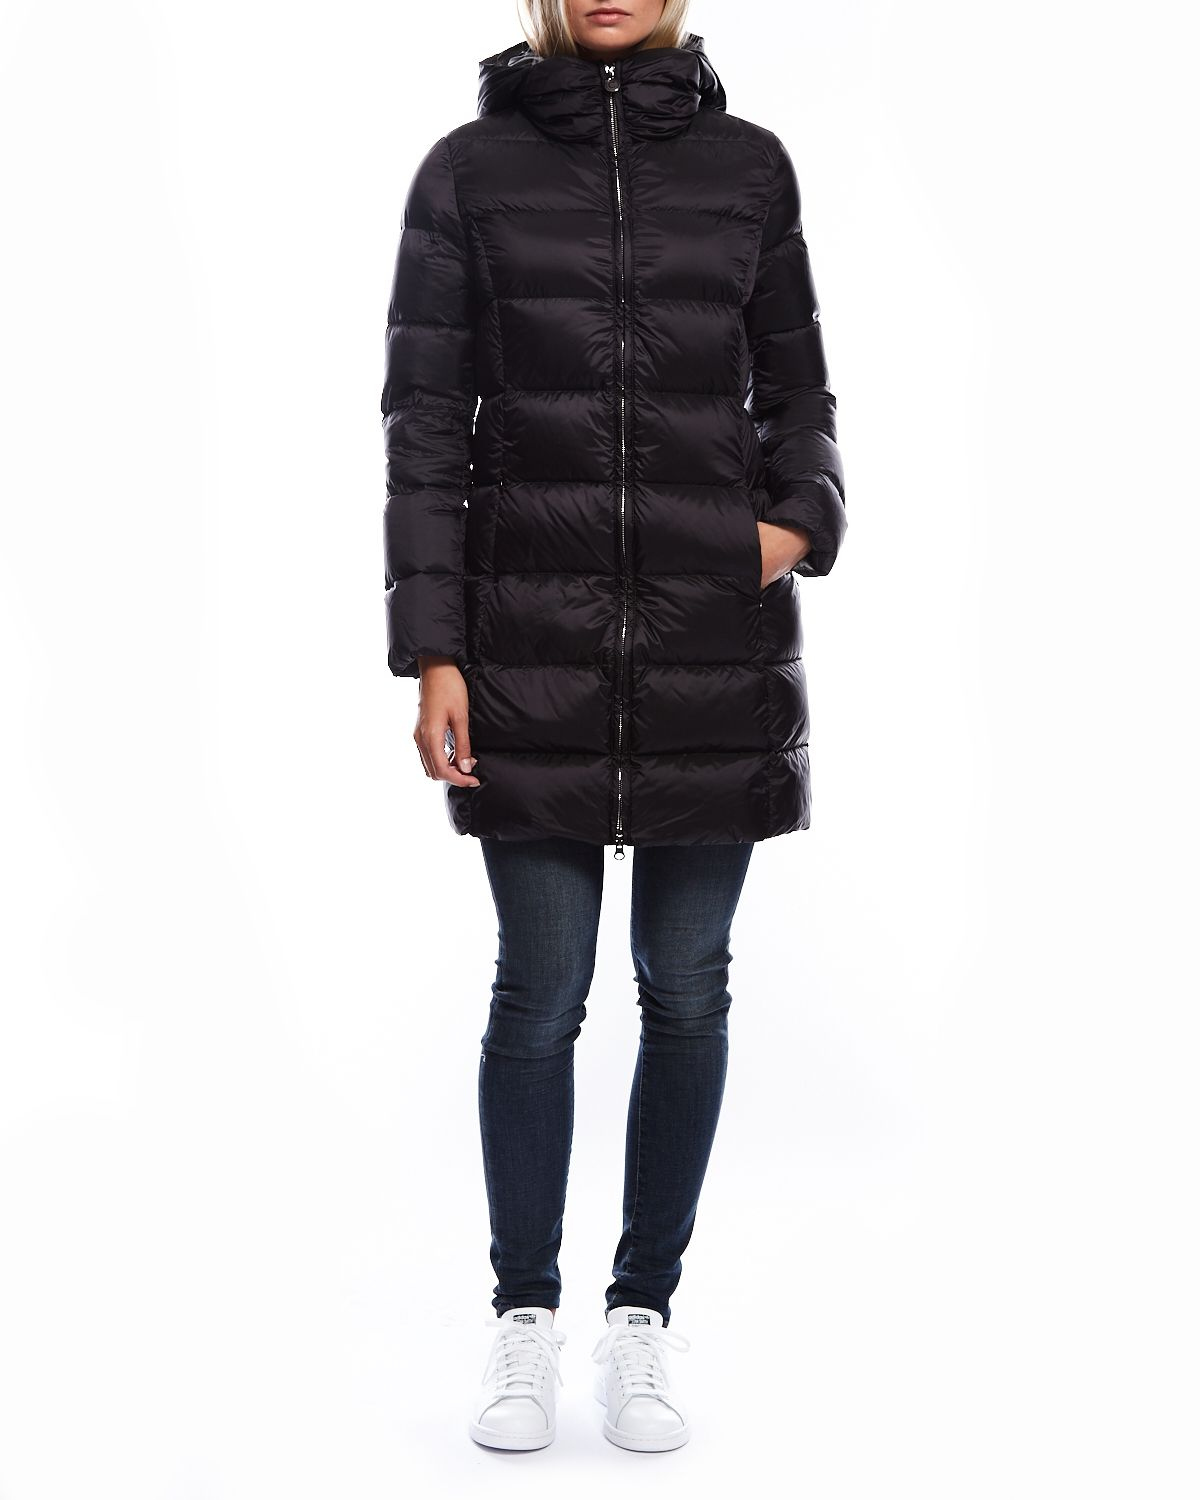 Colmar 2221 Ladies down jacket black | Style | Pinterest ...